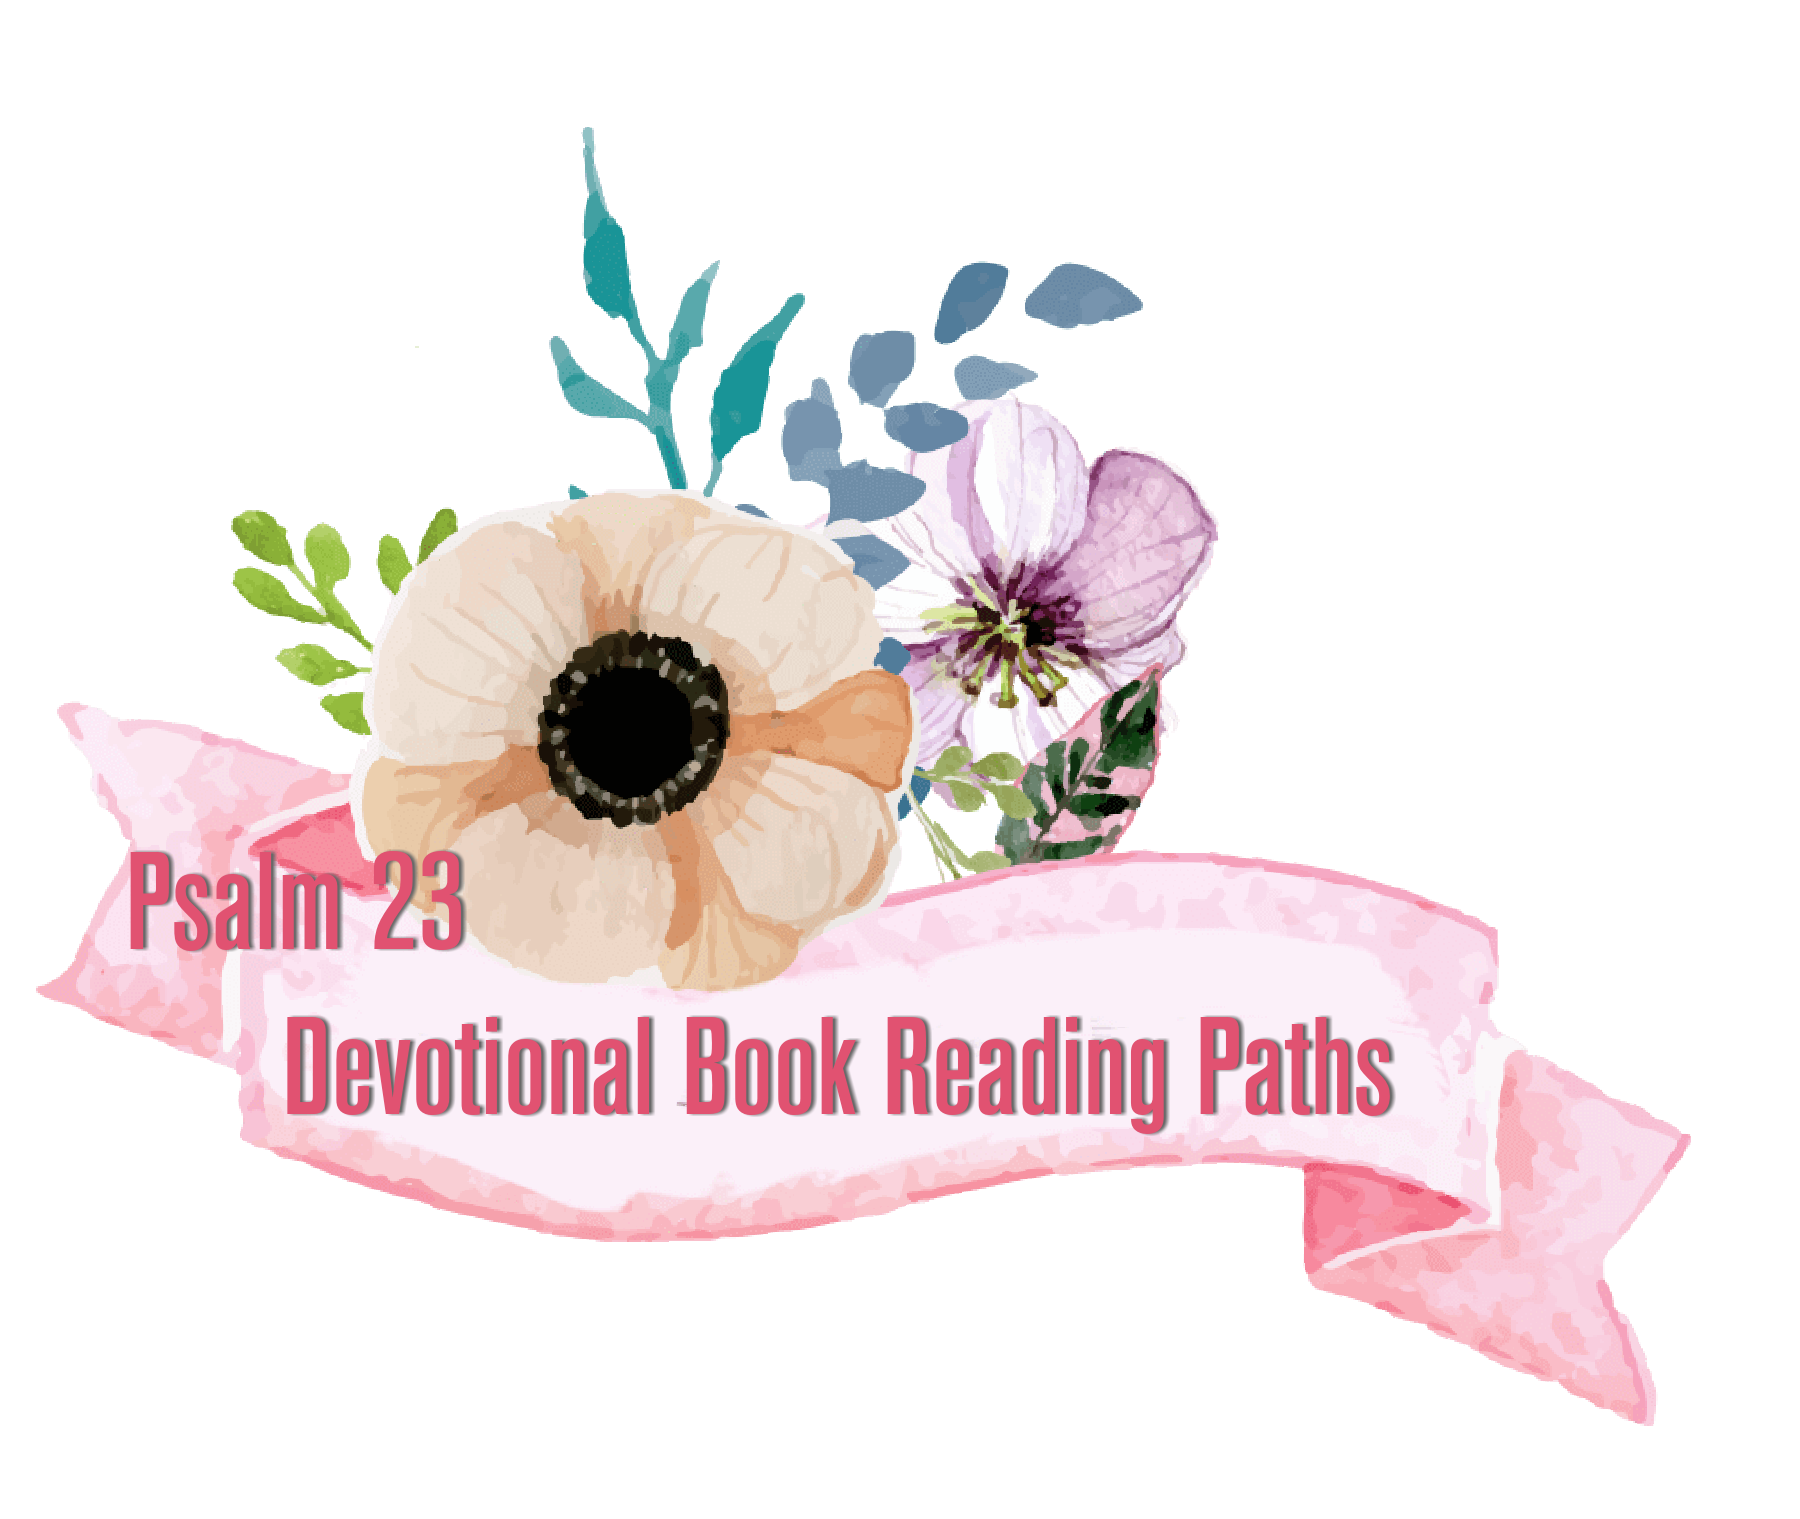 Devotionalbookreading